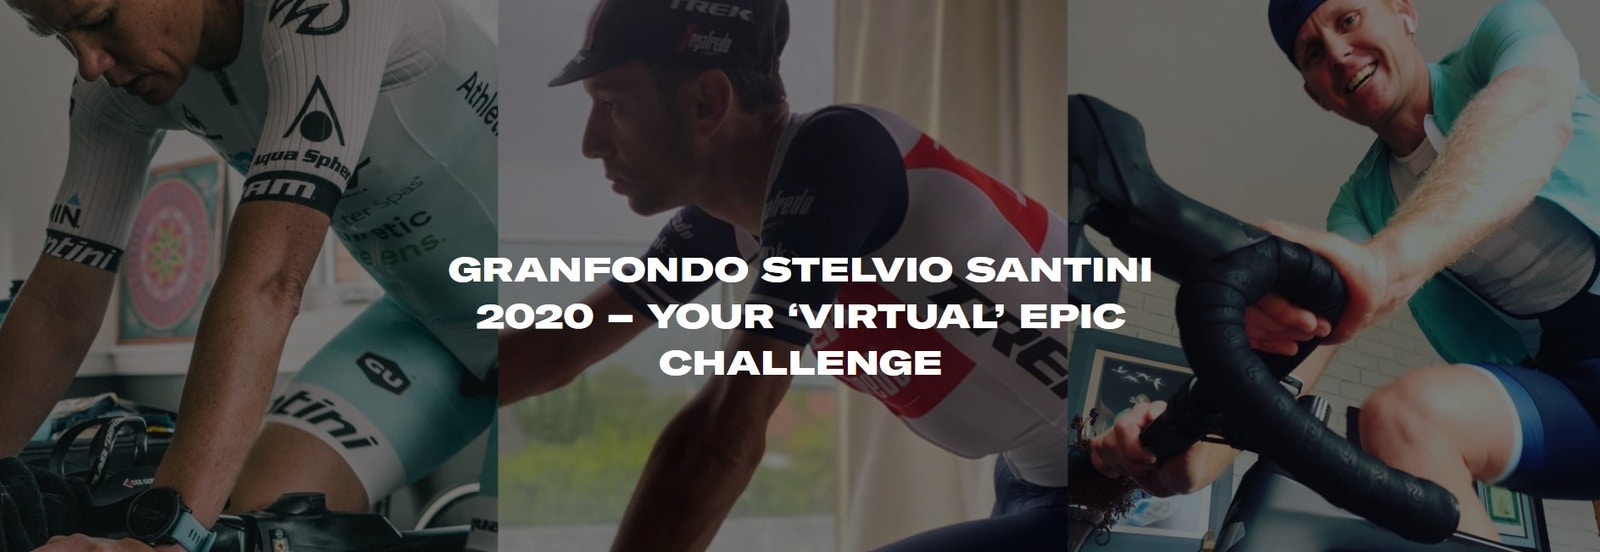 GRANFONDO STELVIO SANTINI 2020 – YOUR 'VIRTUAL' EPIC CHALLENGE